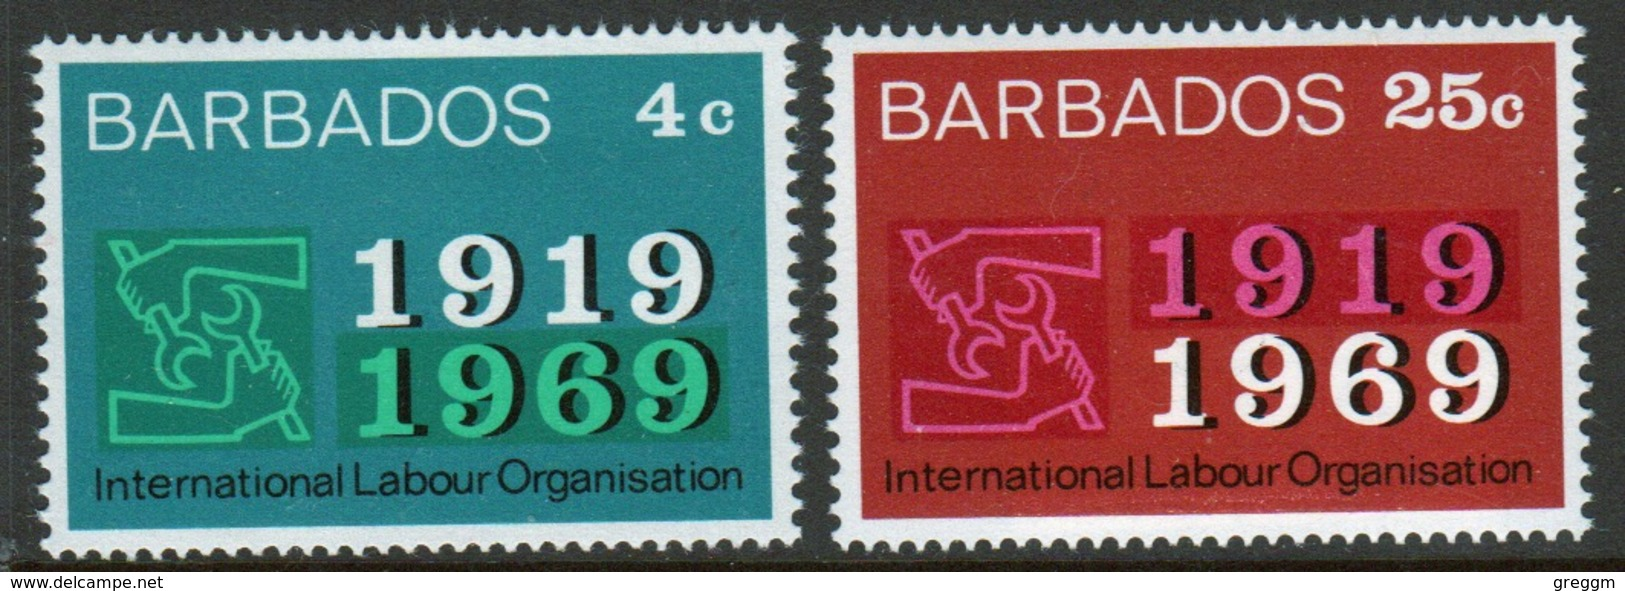 Barbados Set Of Stamps Issued To Celebrate 50th Anniversary Of International Labour Organisation. - Barbados (...-1966)